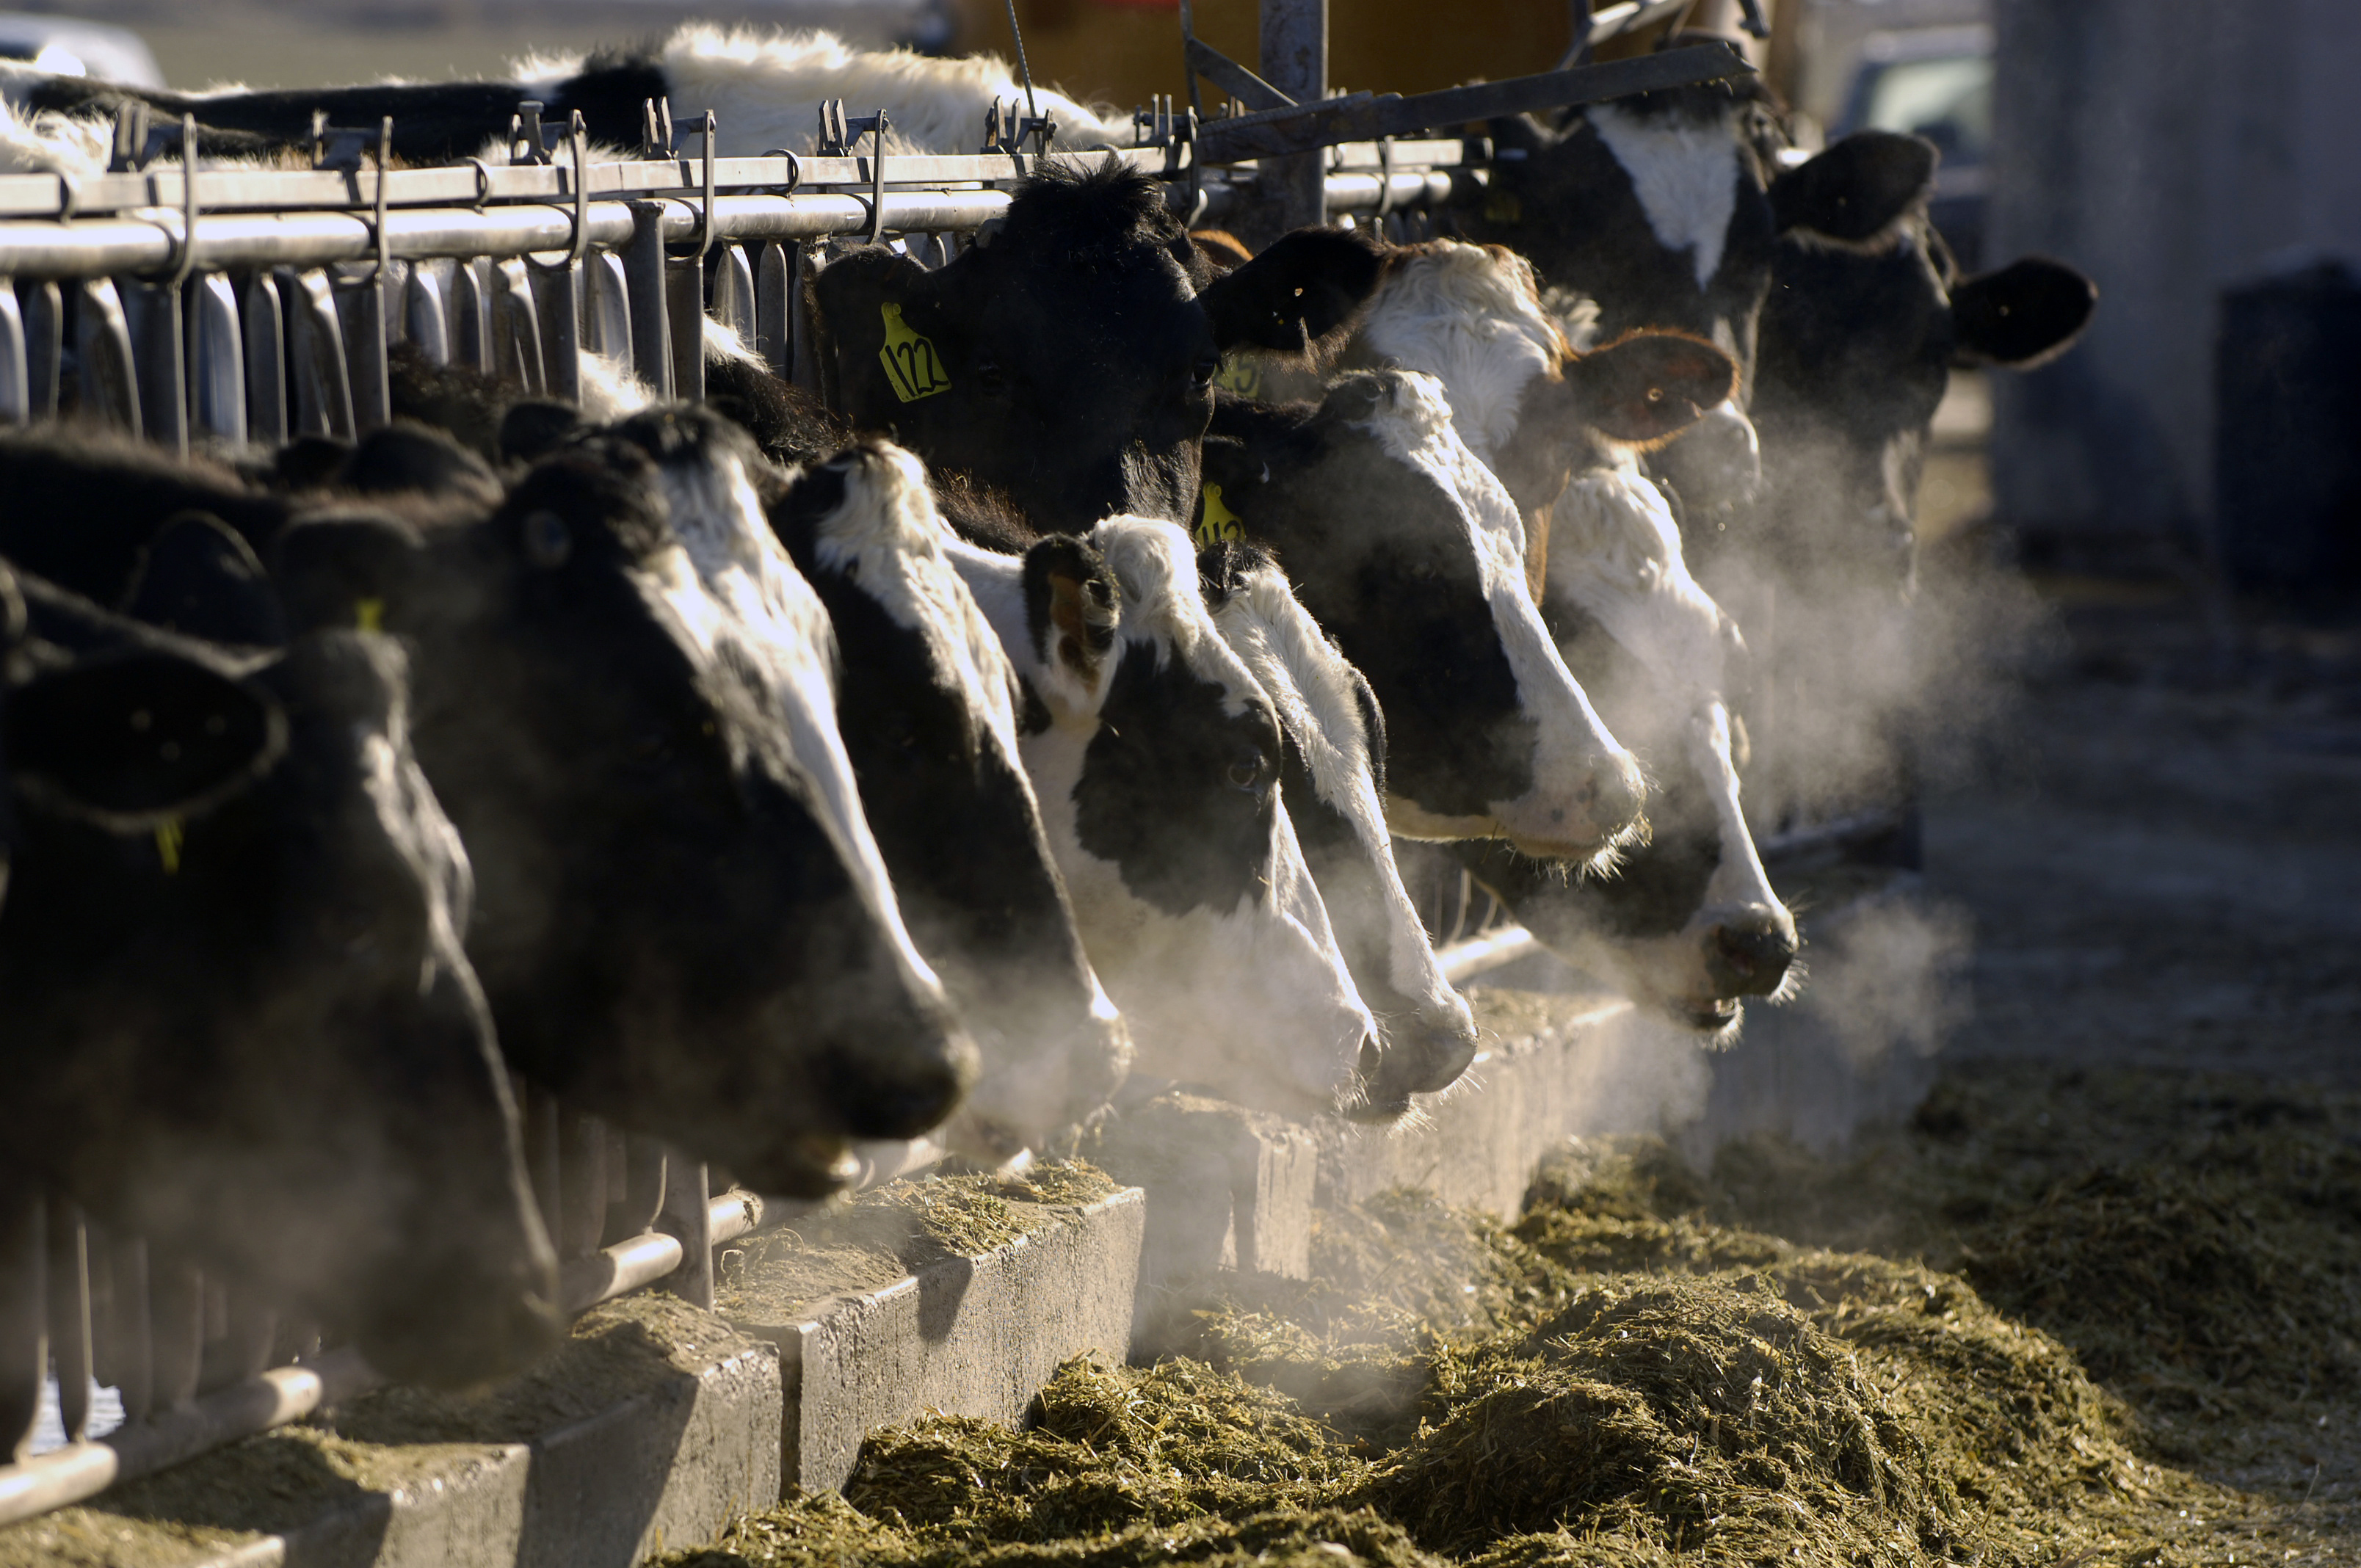 Gassy Cows Warm The Planet. Scientists Think They Know How To Squelch Those Belches